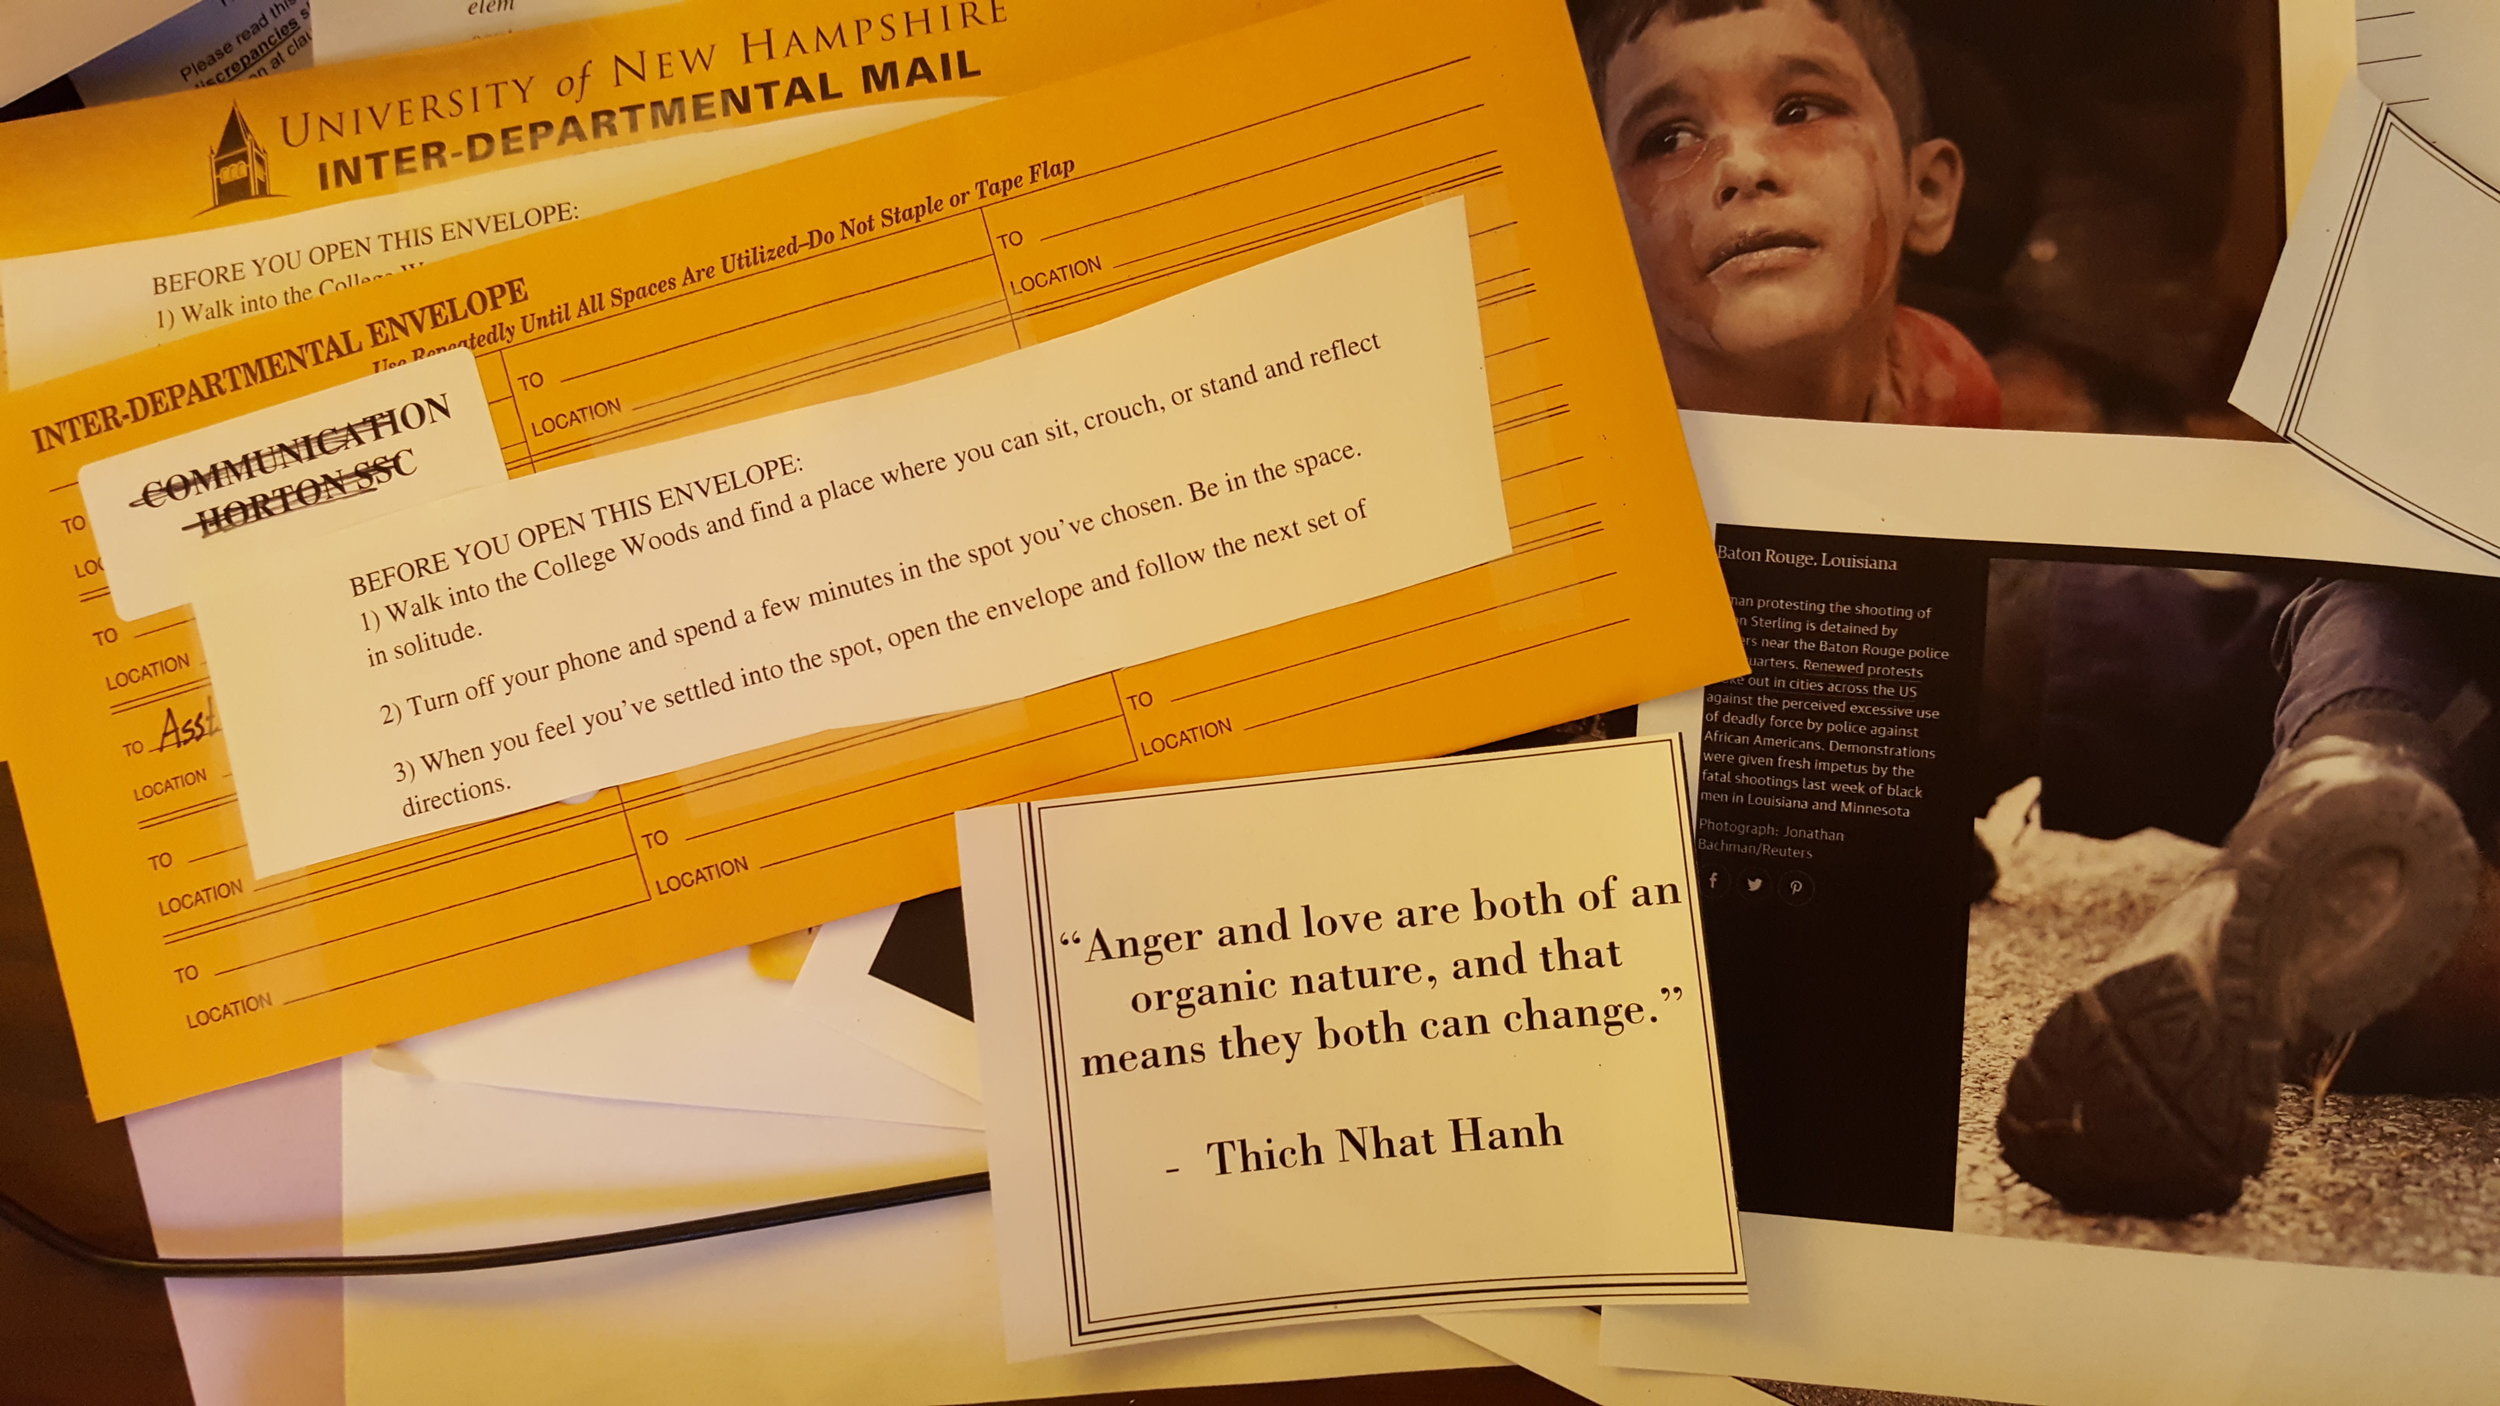 Figure 2: Envelopes containing images and instructions. Photograph by author.